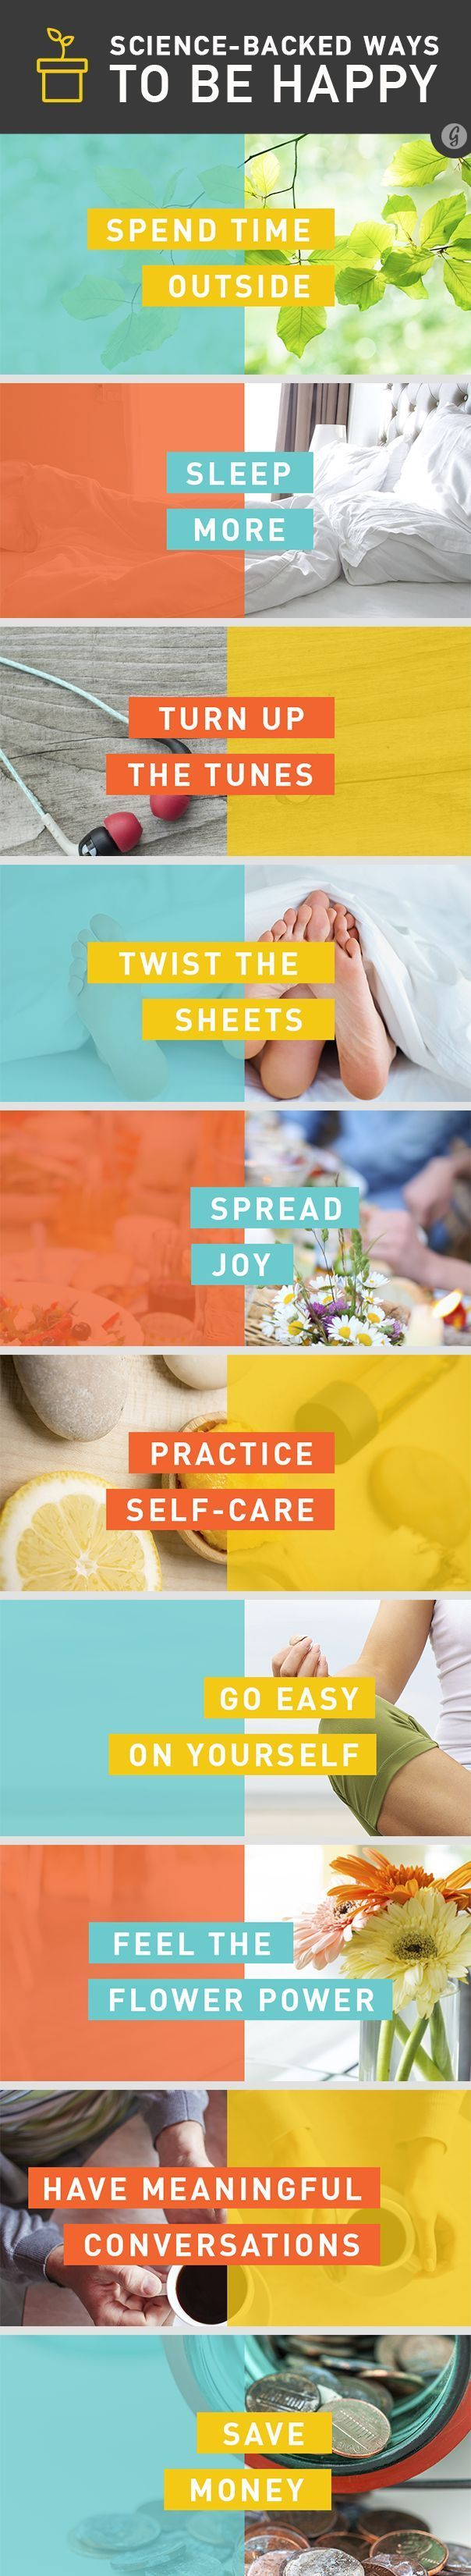 25 Science-Backed Ways to Boost Happiness #science #happiness #wellness